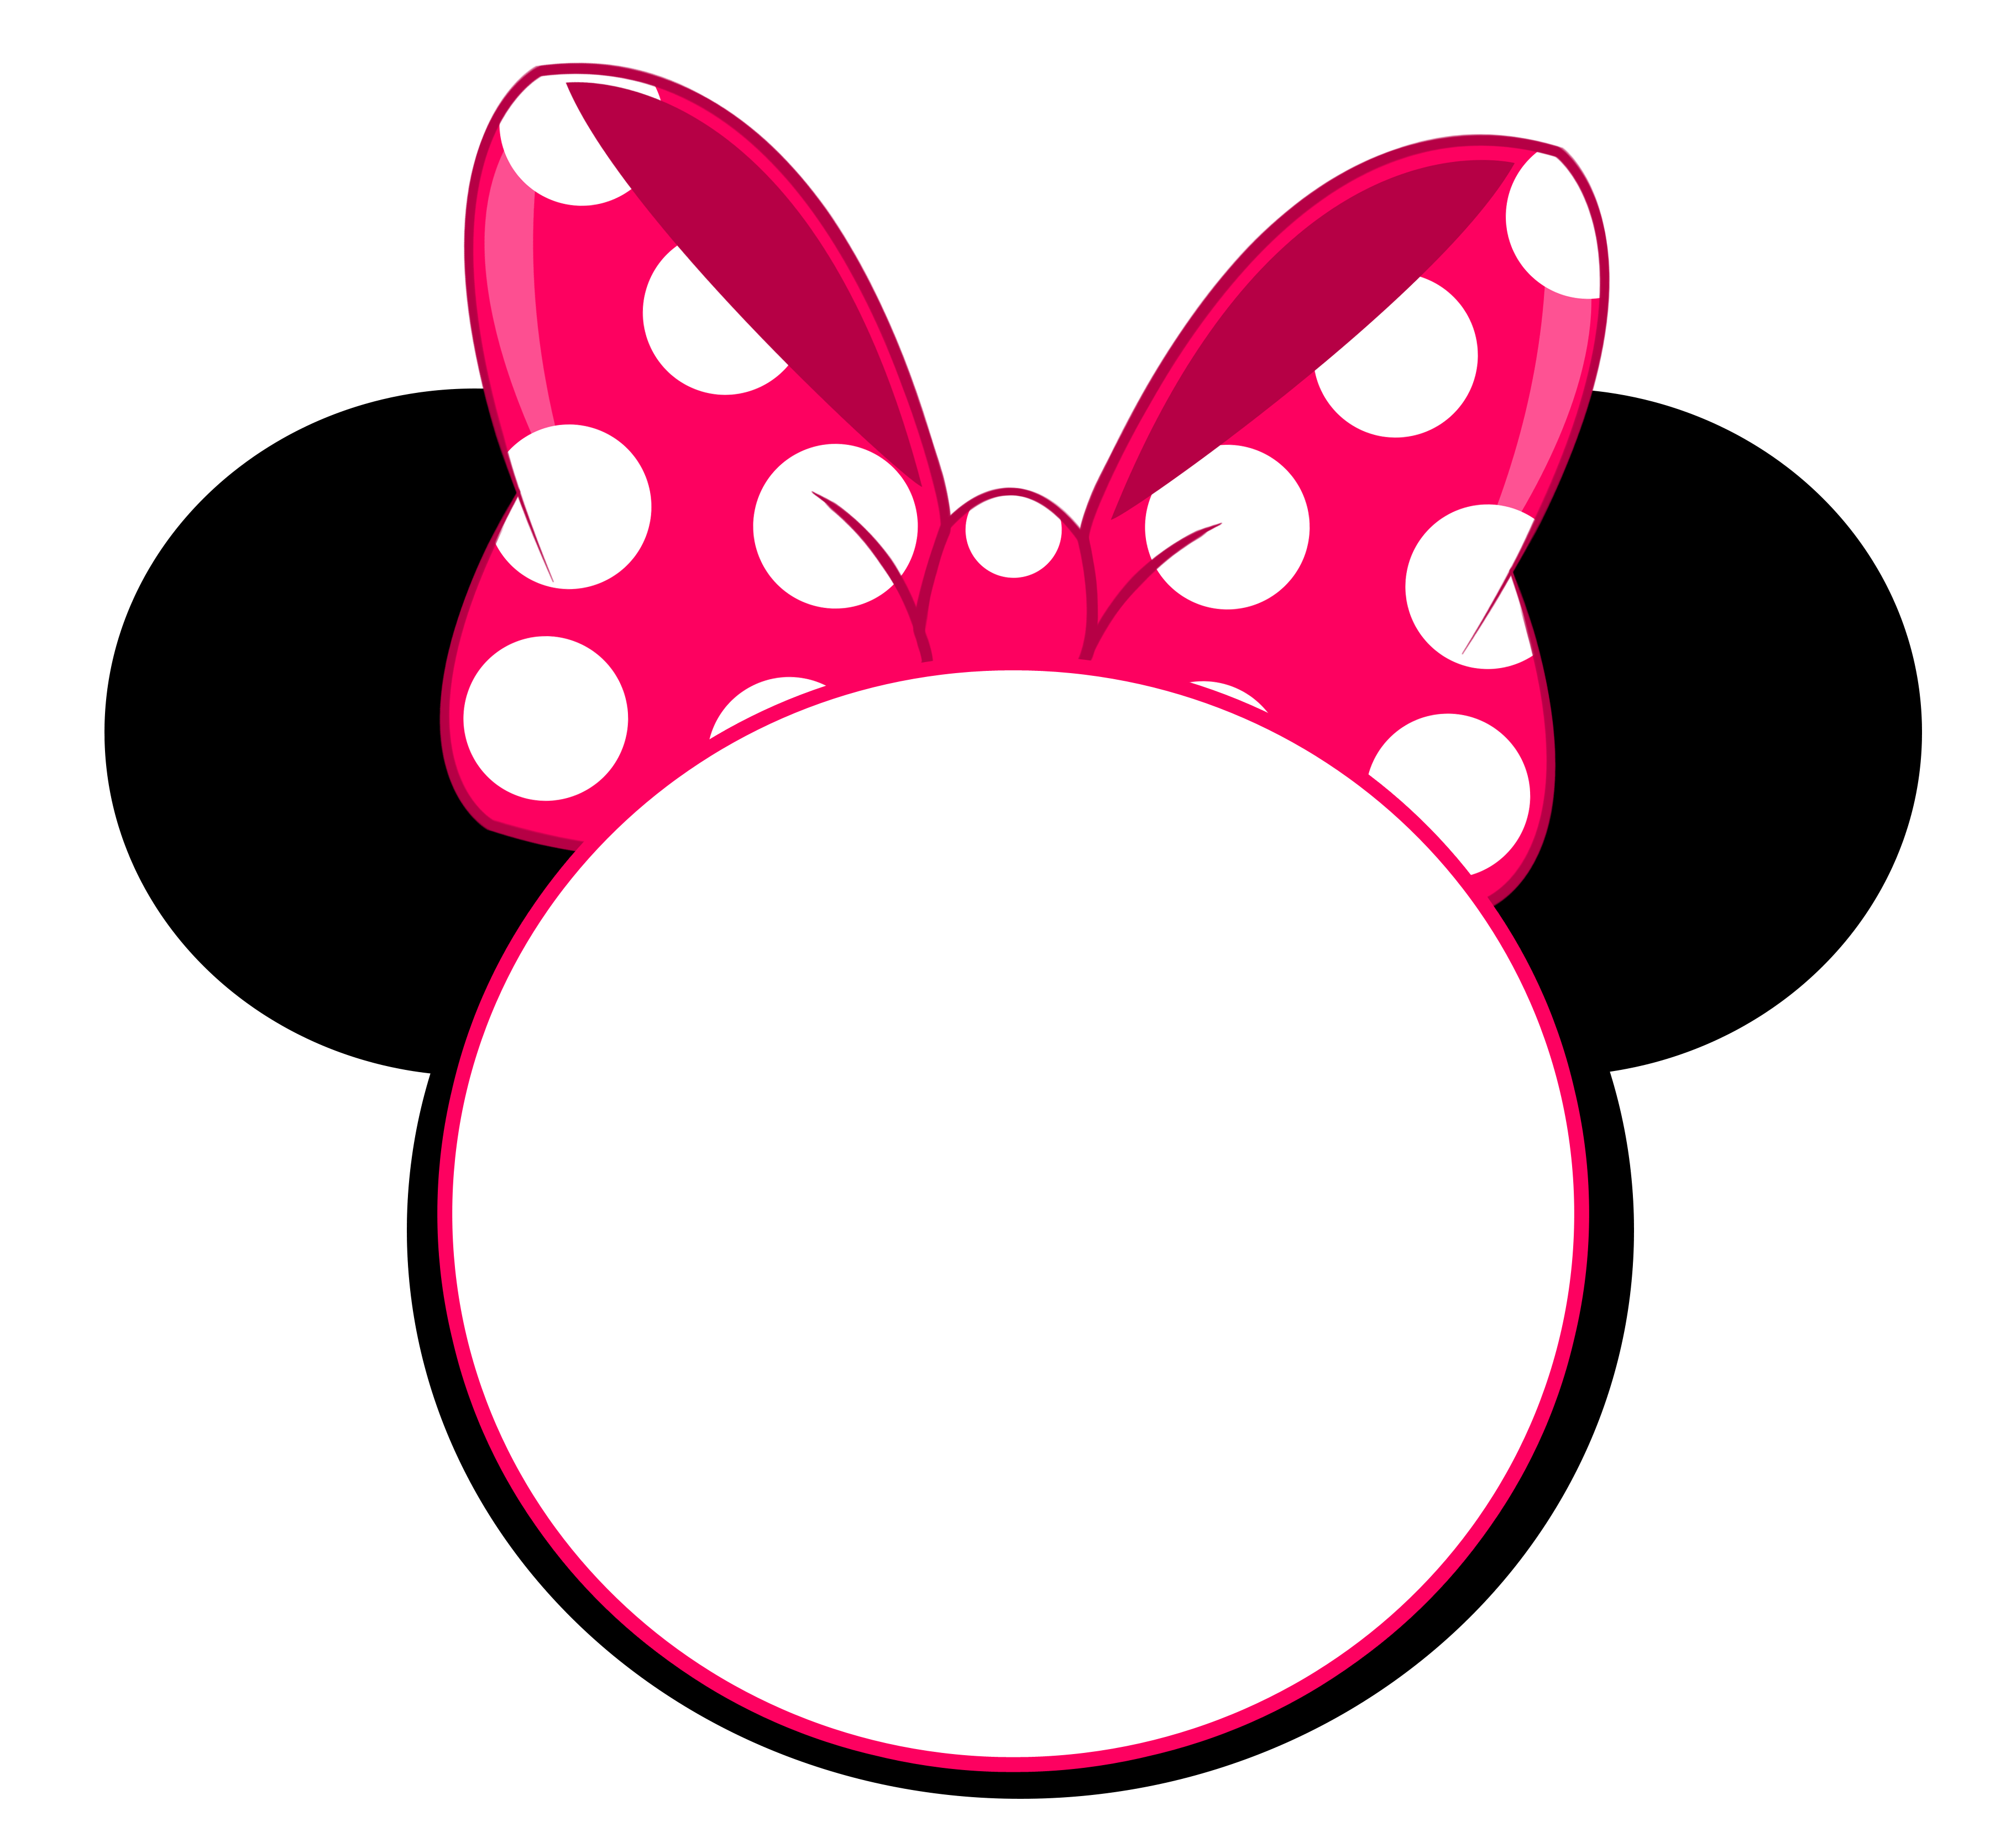 Minnie ears clipart clipart images gallery for free download.